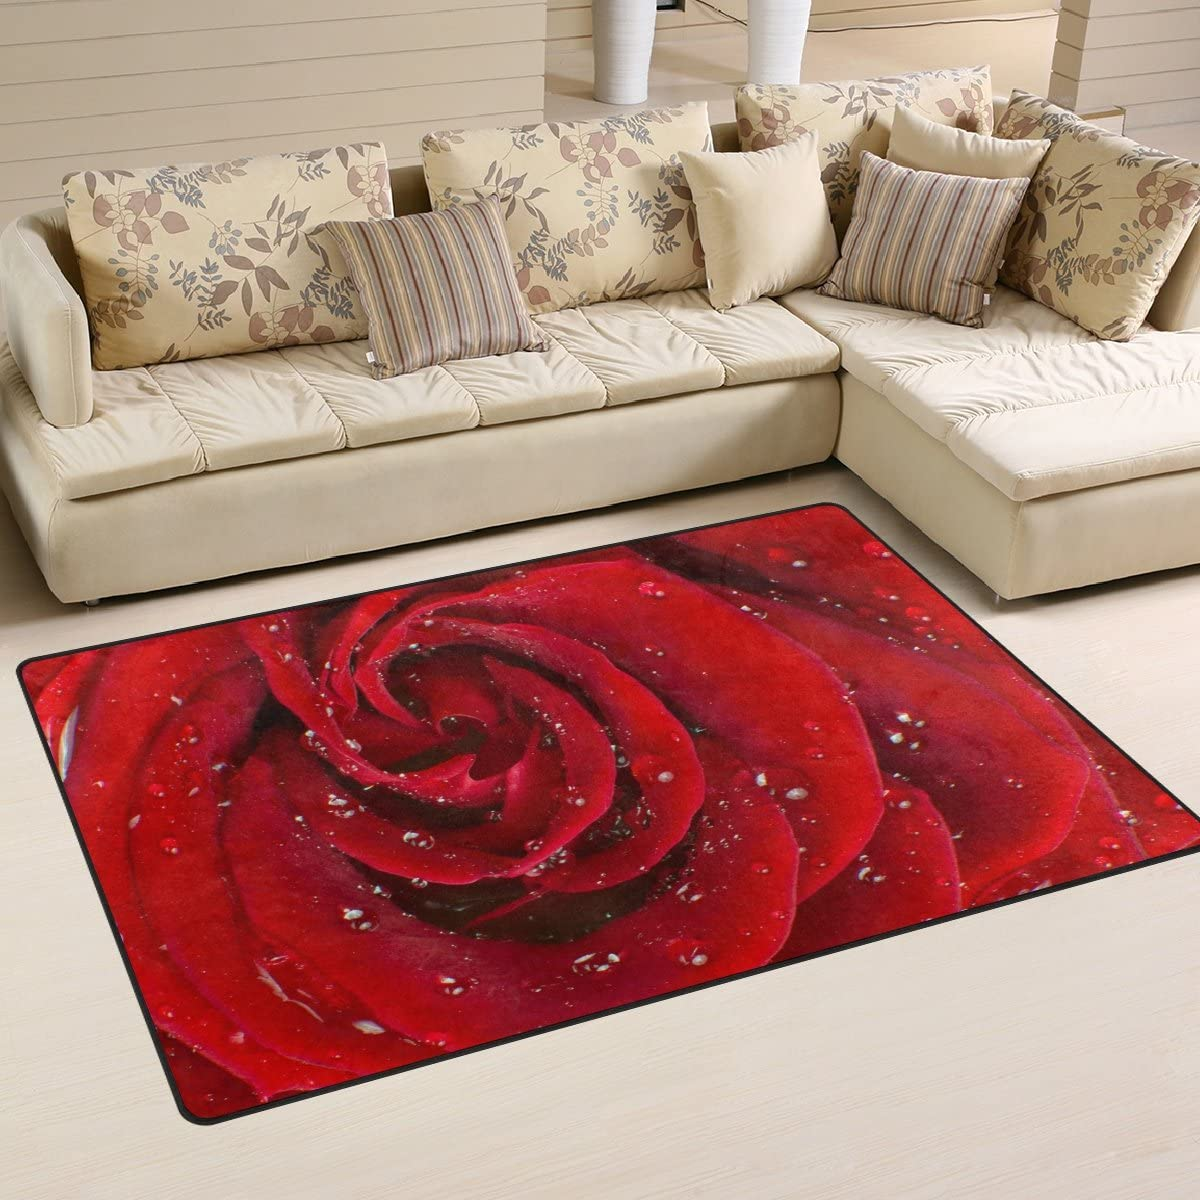 WOZO Red Rose Water Drop Area Rug Rugs Non-Slip Floor Mat Doormats Living Dining Room Bedroom Dorm 60 x 39 inches inches Home Decor